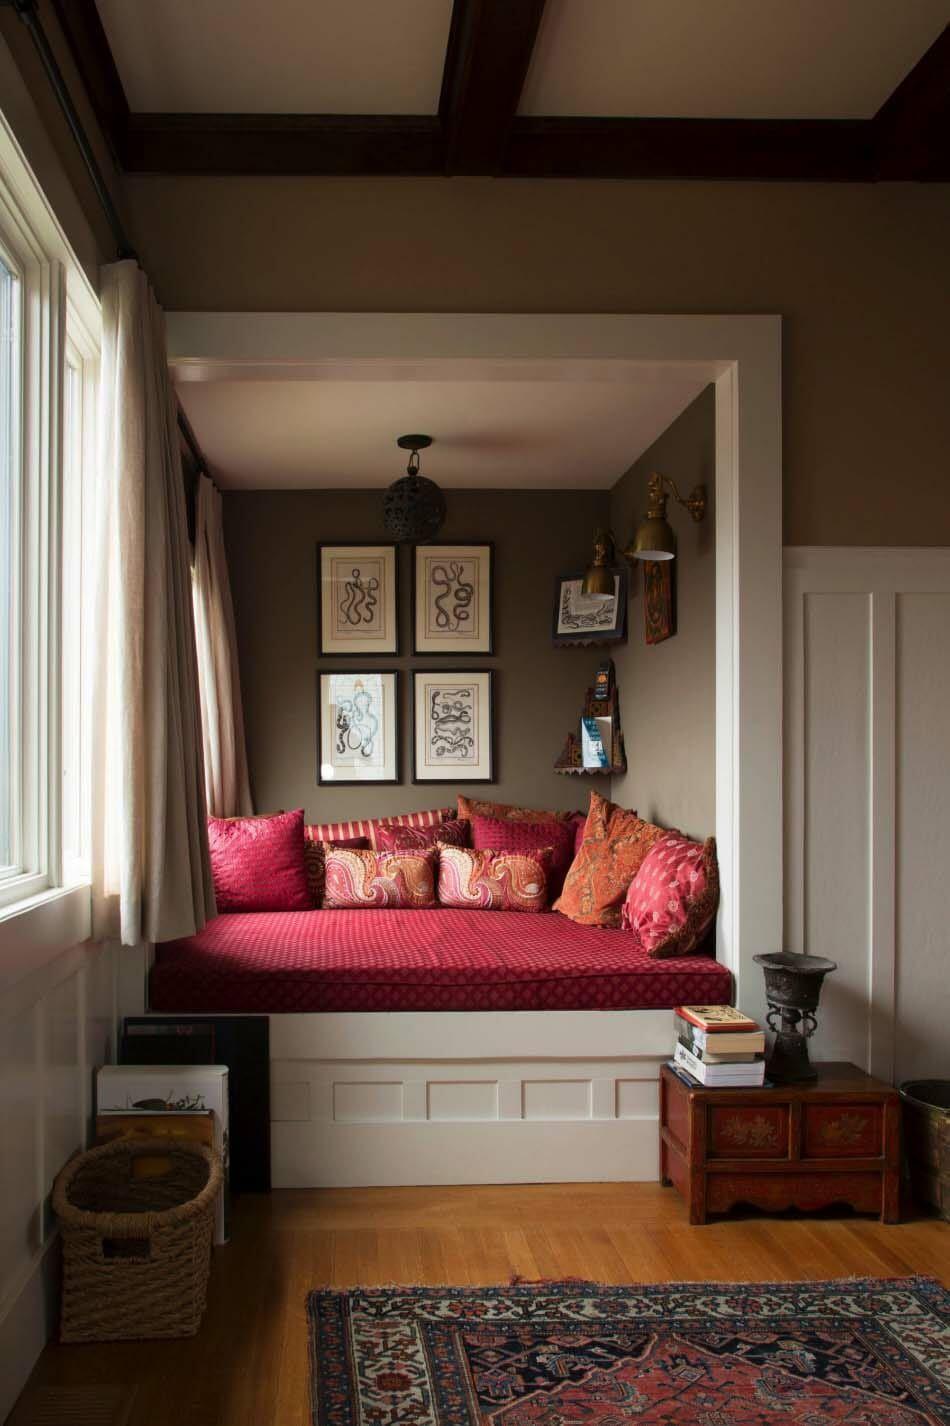 20+ Incredibly cozy book nooks you may never want to leave! is part of Romantic Cozy Living Room - Have a look at an amazing collection of cozy book nooks to inspire you to create one in an underutilized area of your own home